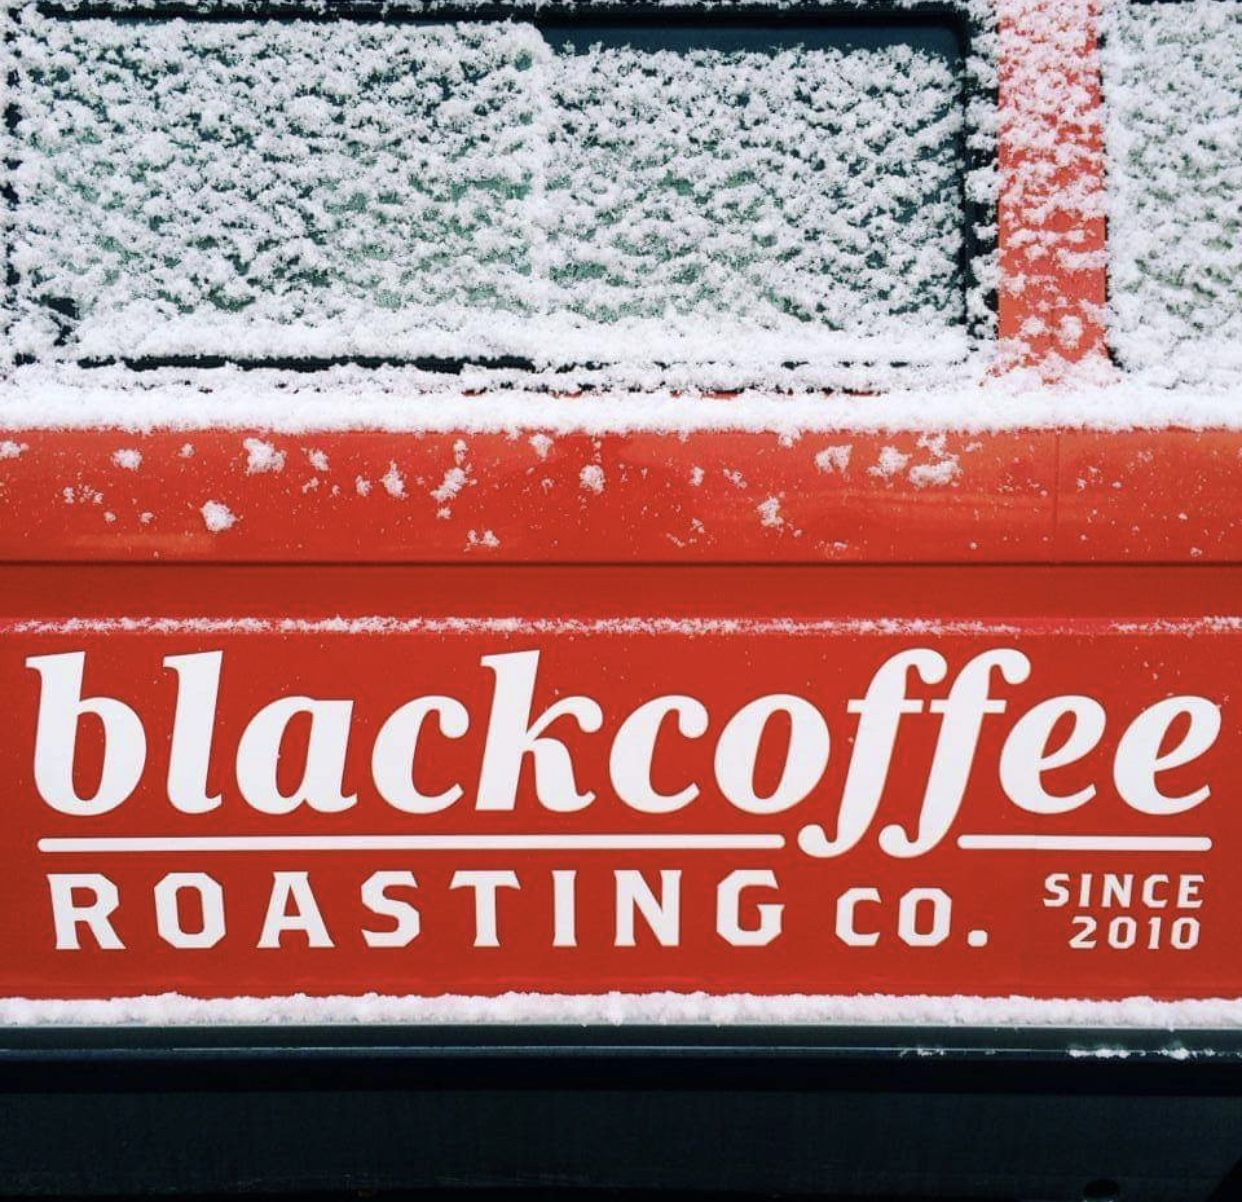 Pin By Savannah Dryden On Amazing Coffee Shops Coffee Roasting Black Coffee Coffee Shop